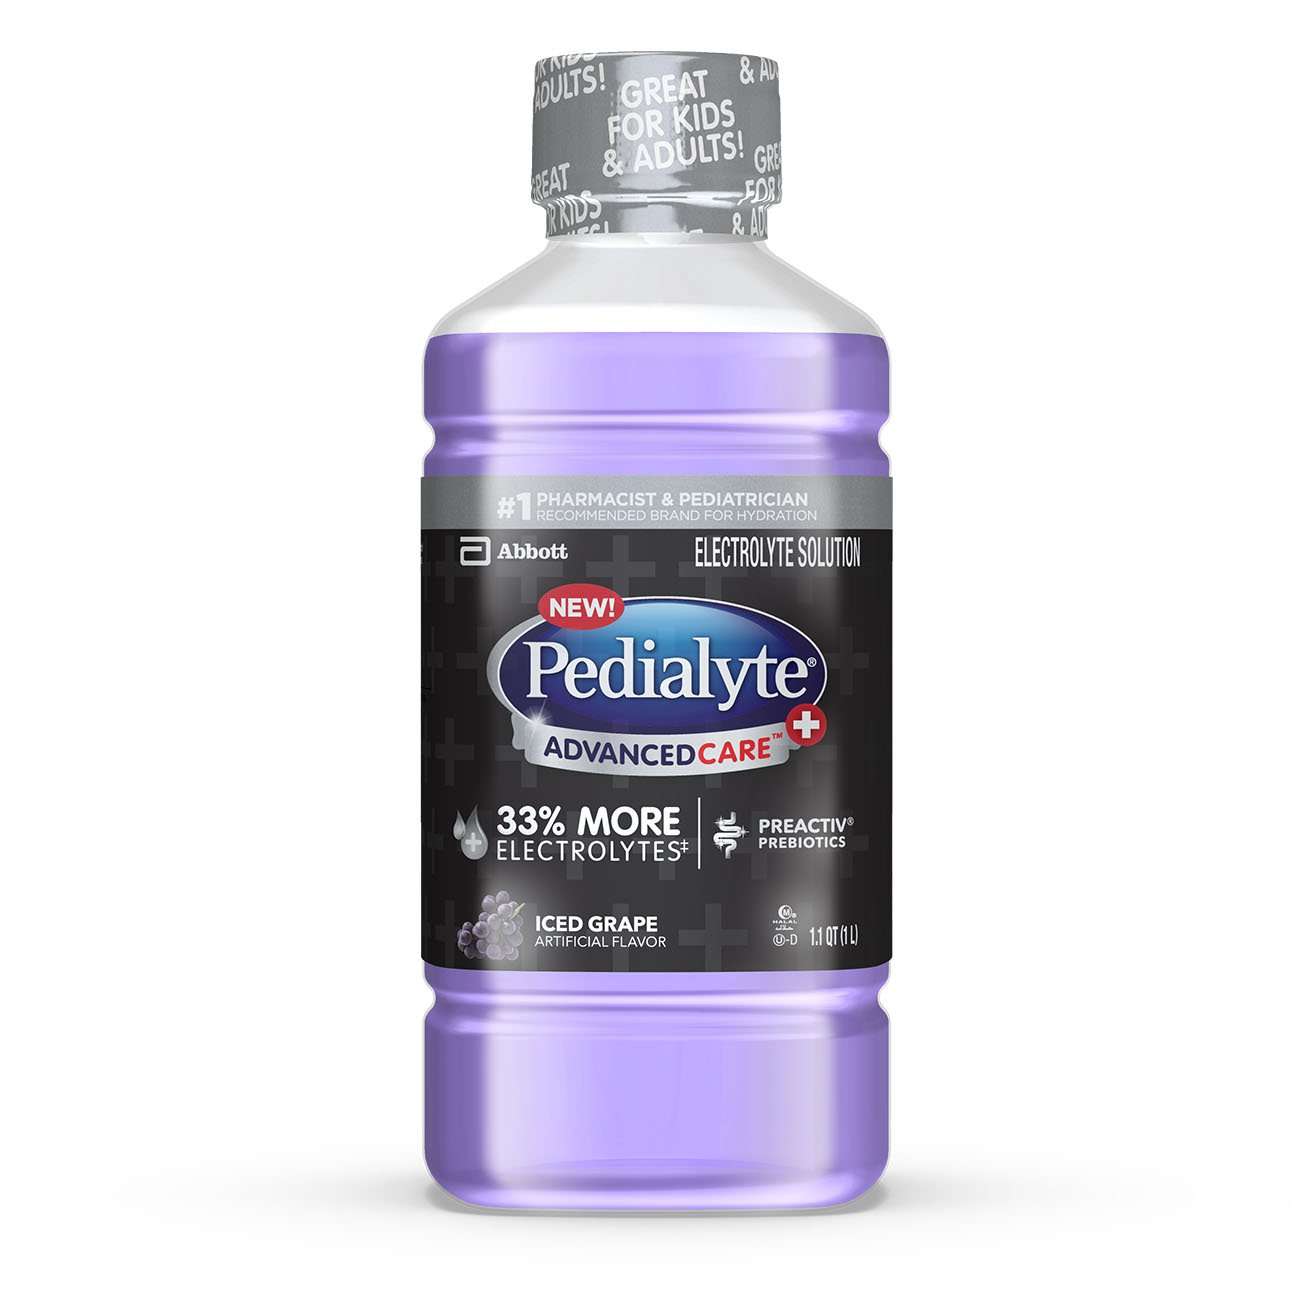 Pedialyte AdvancedCare+ Electrolyte Drink with 33% More Electrolytes and has PreActiv Prebiotics, Iced Grape, 1 Liter, 4 Count